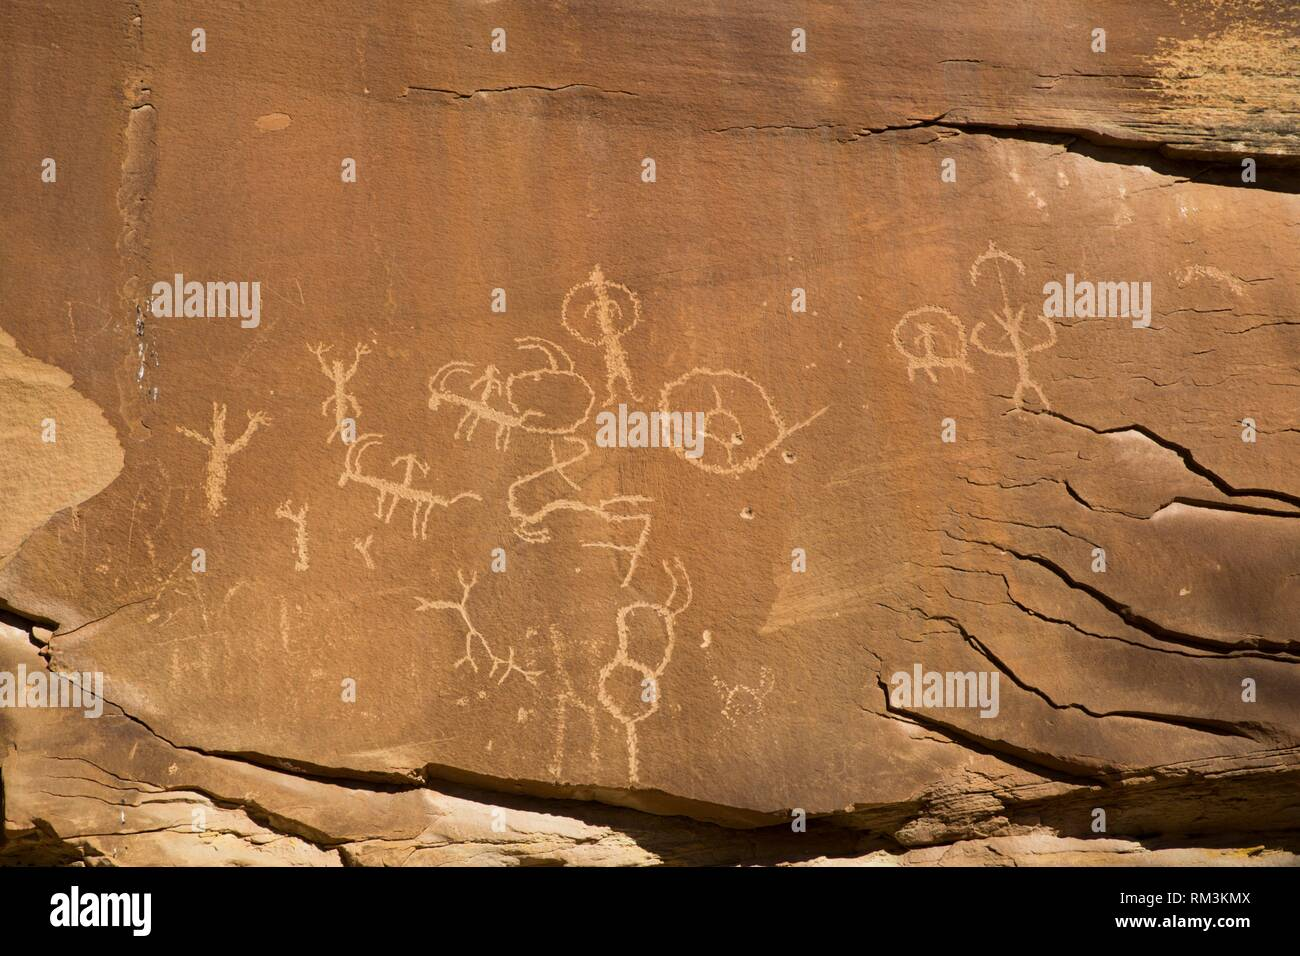 Ancestral Puebloan Petroglyphs, Upper Sand Island, Bears Ears National Monument, Utah, USA - Stock Image